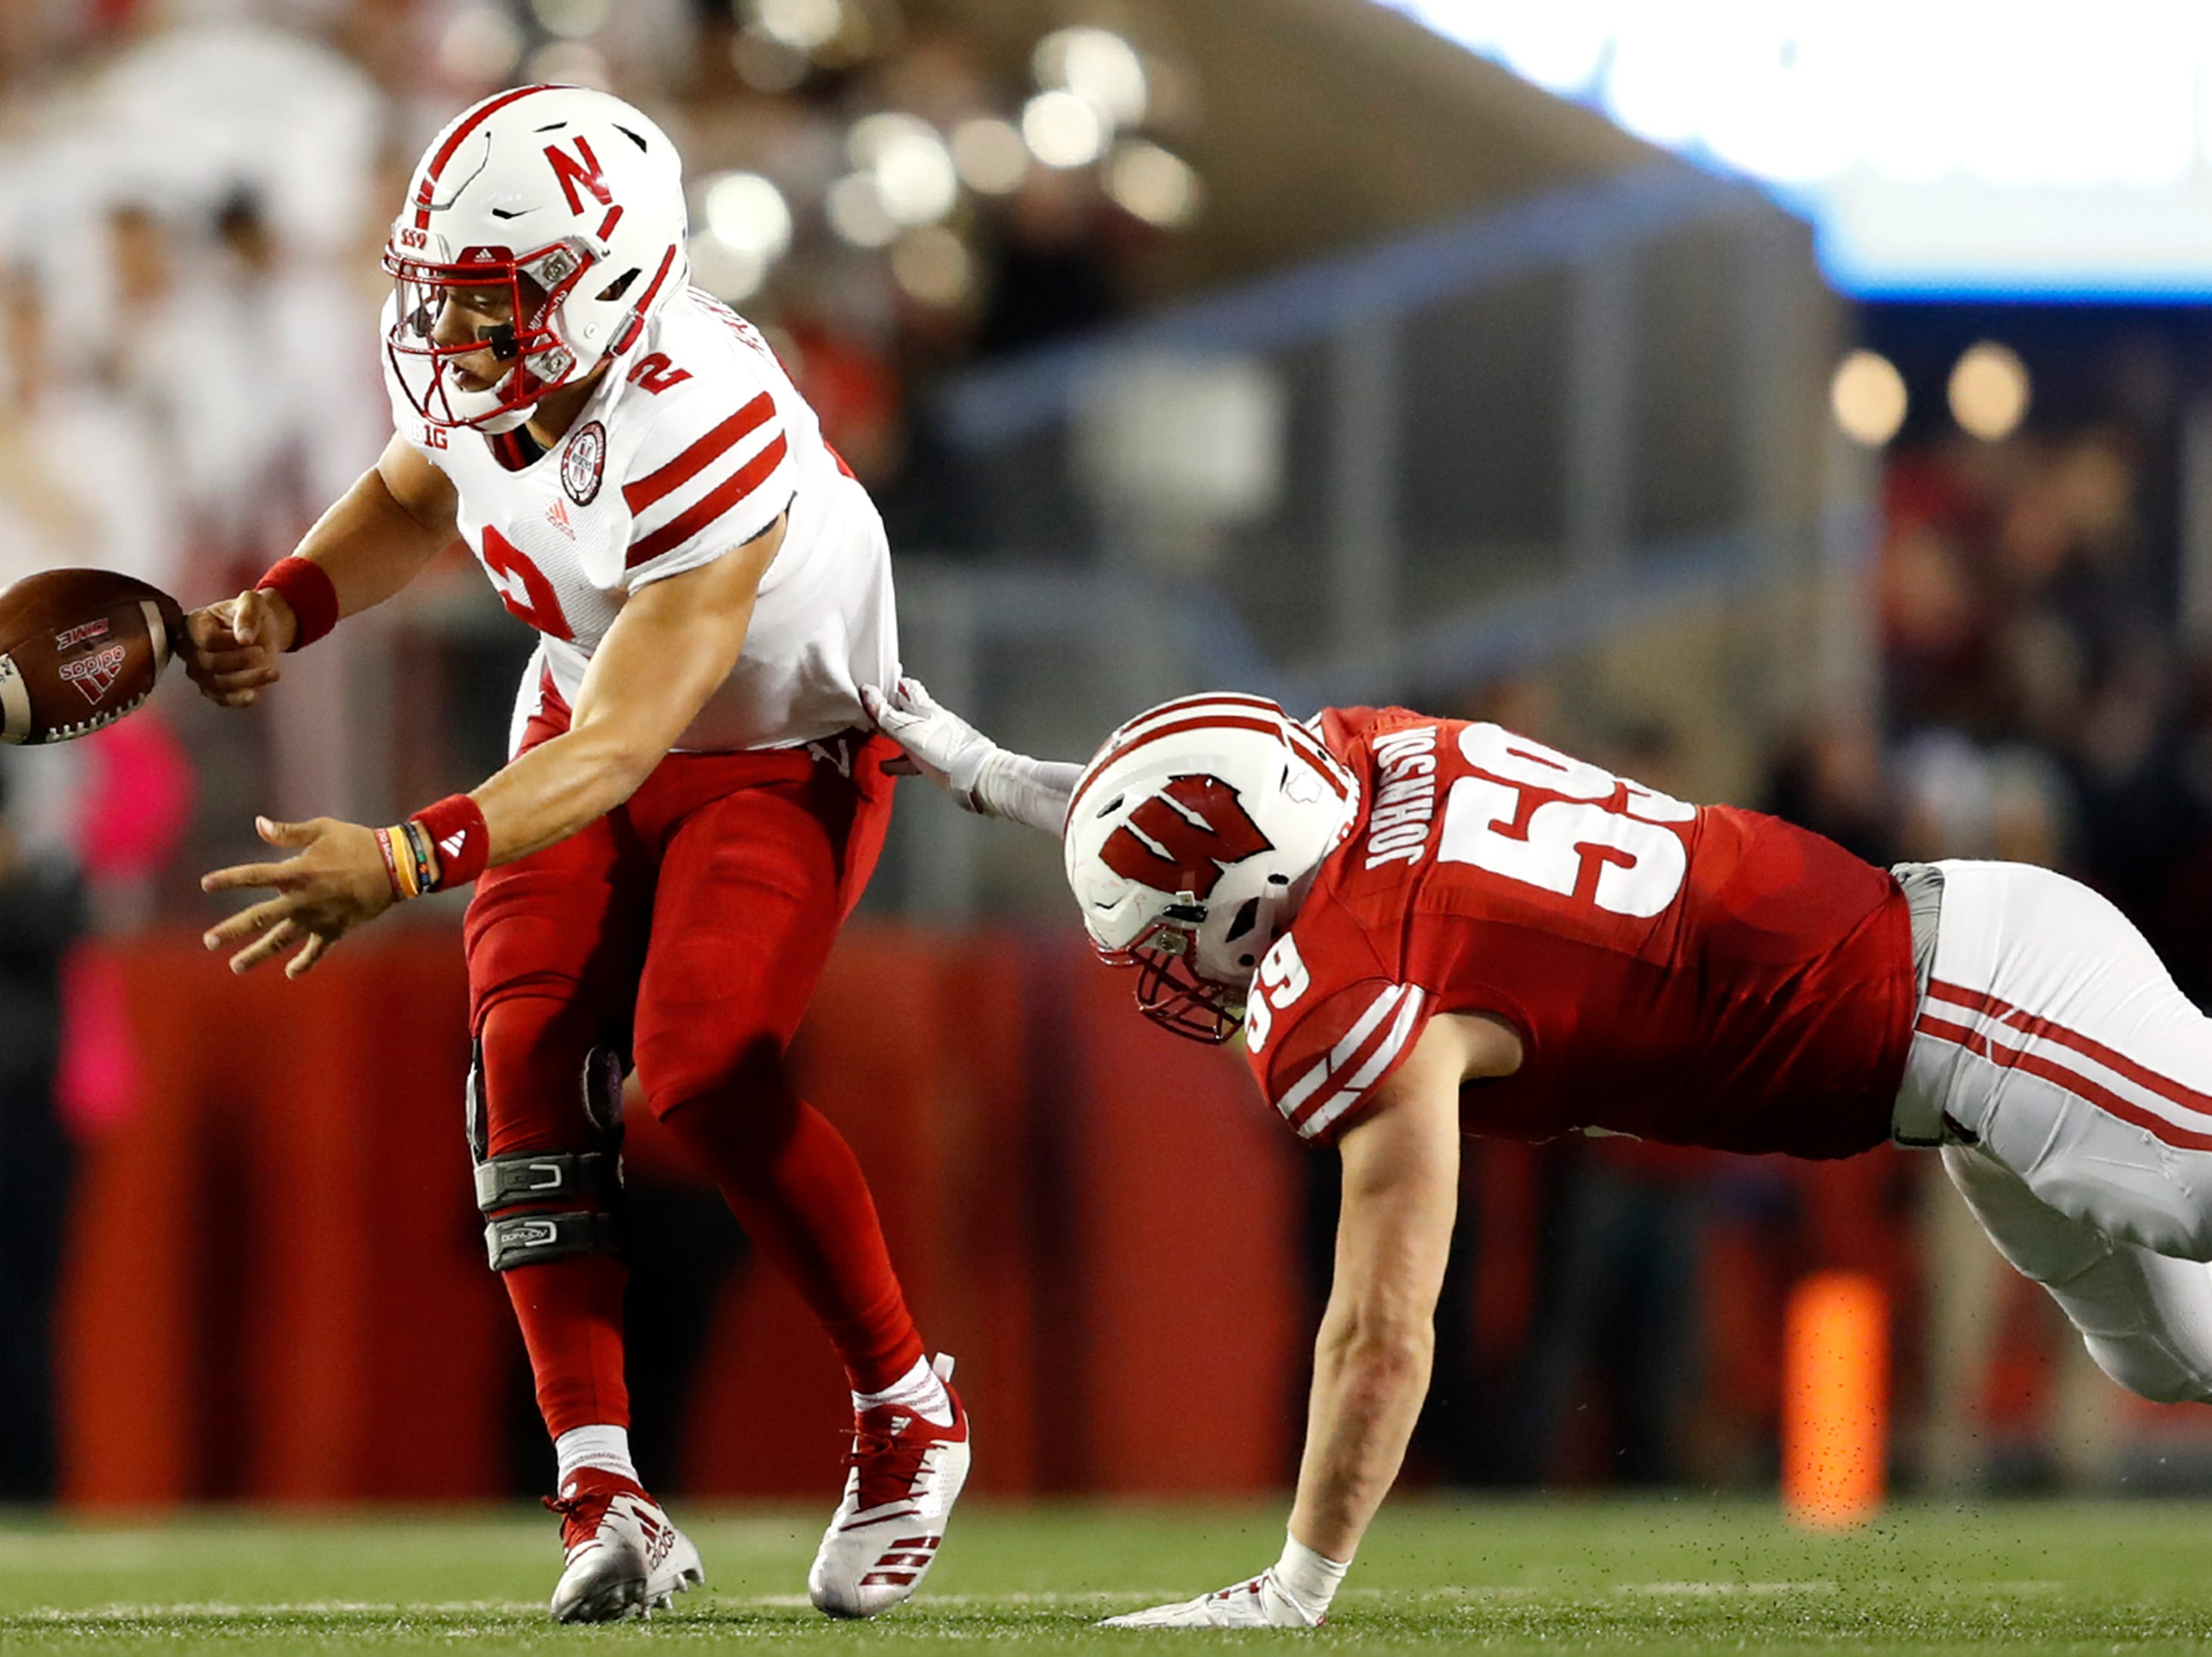 Nebraska quarterback Adrian Martinez fumbles the ball as Wisconsin linebacker Tyler Johnson puts pressure on him Saturday, Oct. 6, 2018, at Camp Randall Stadium in Madison, Wis.